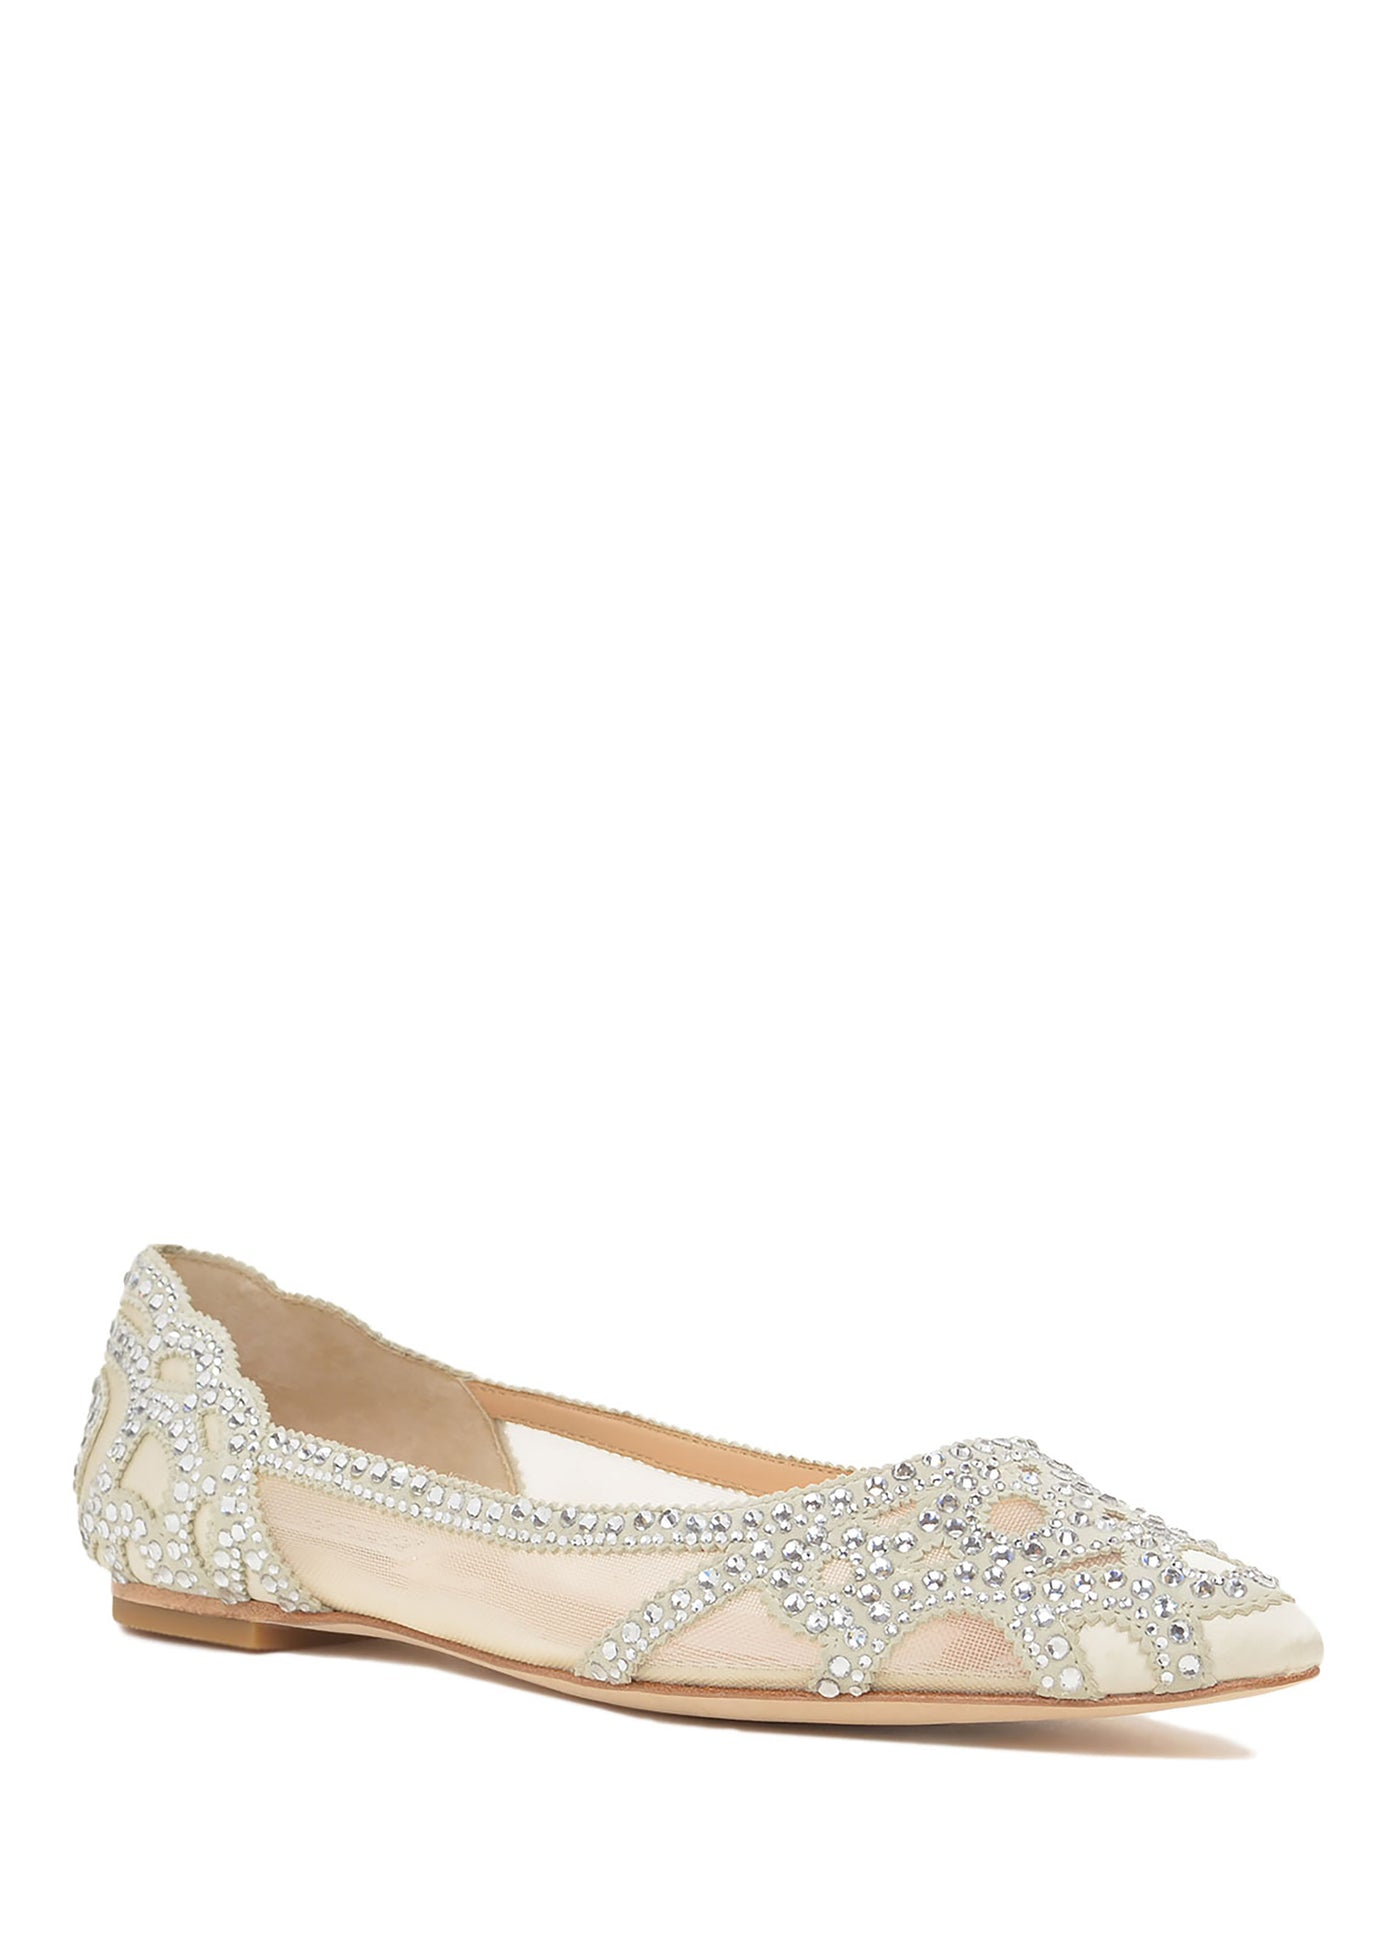 Gigi, Shoes, Badgley Mischka - Eternal Bridal